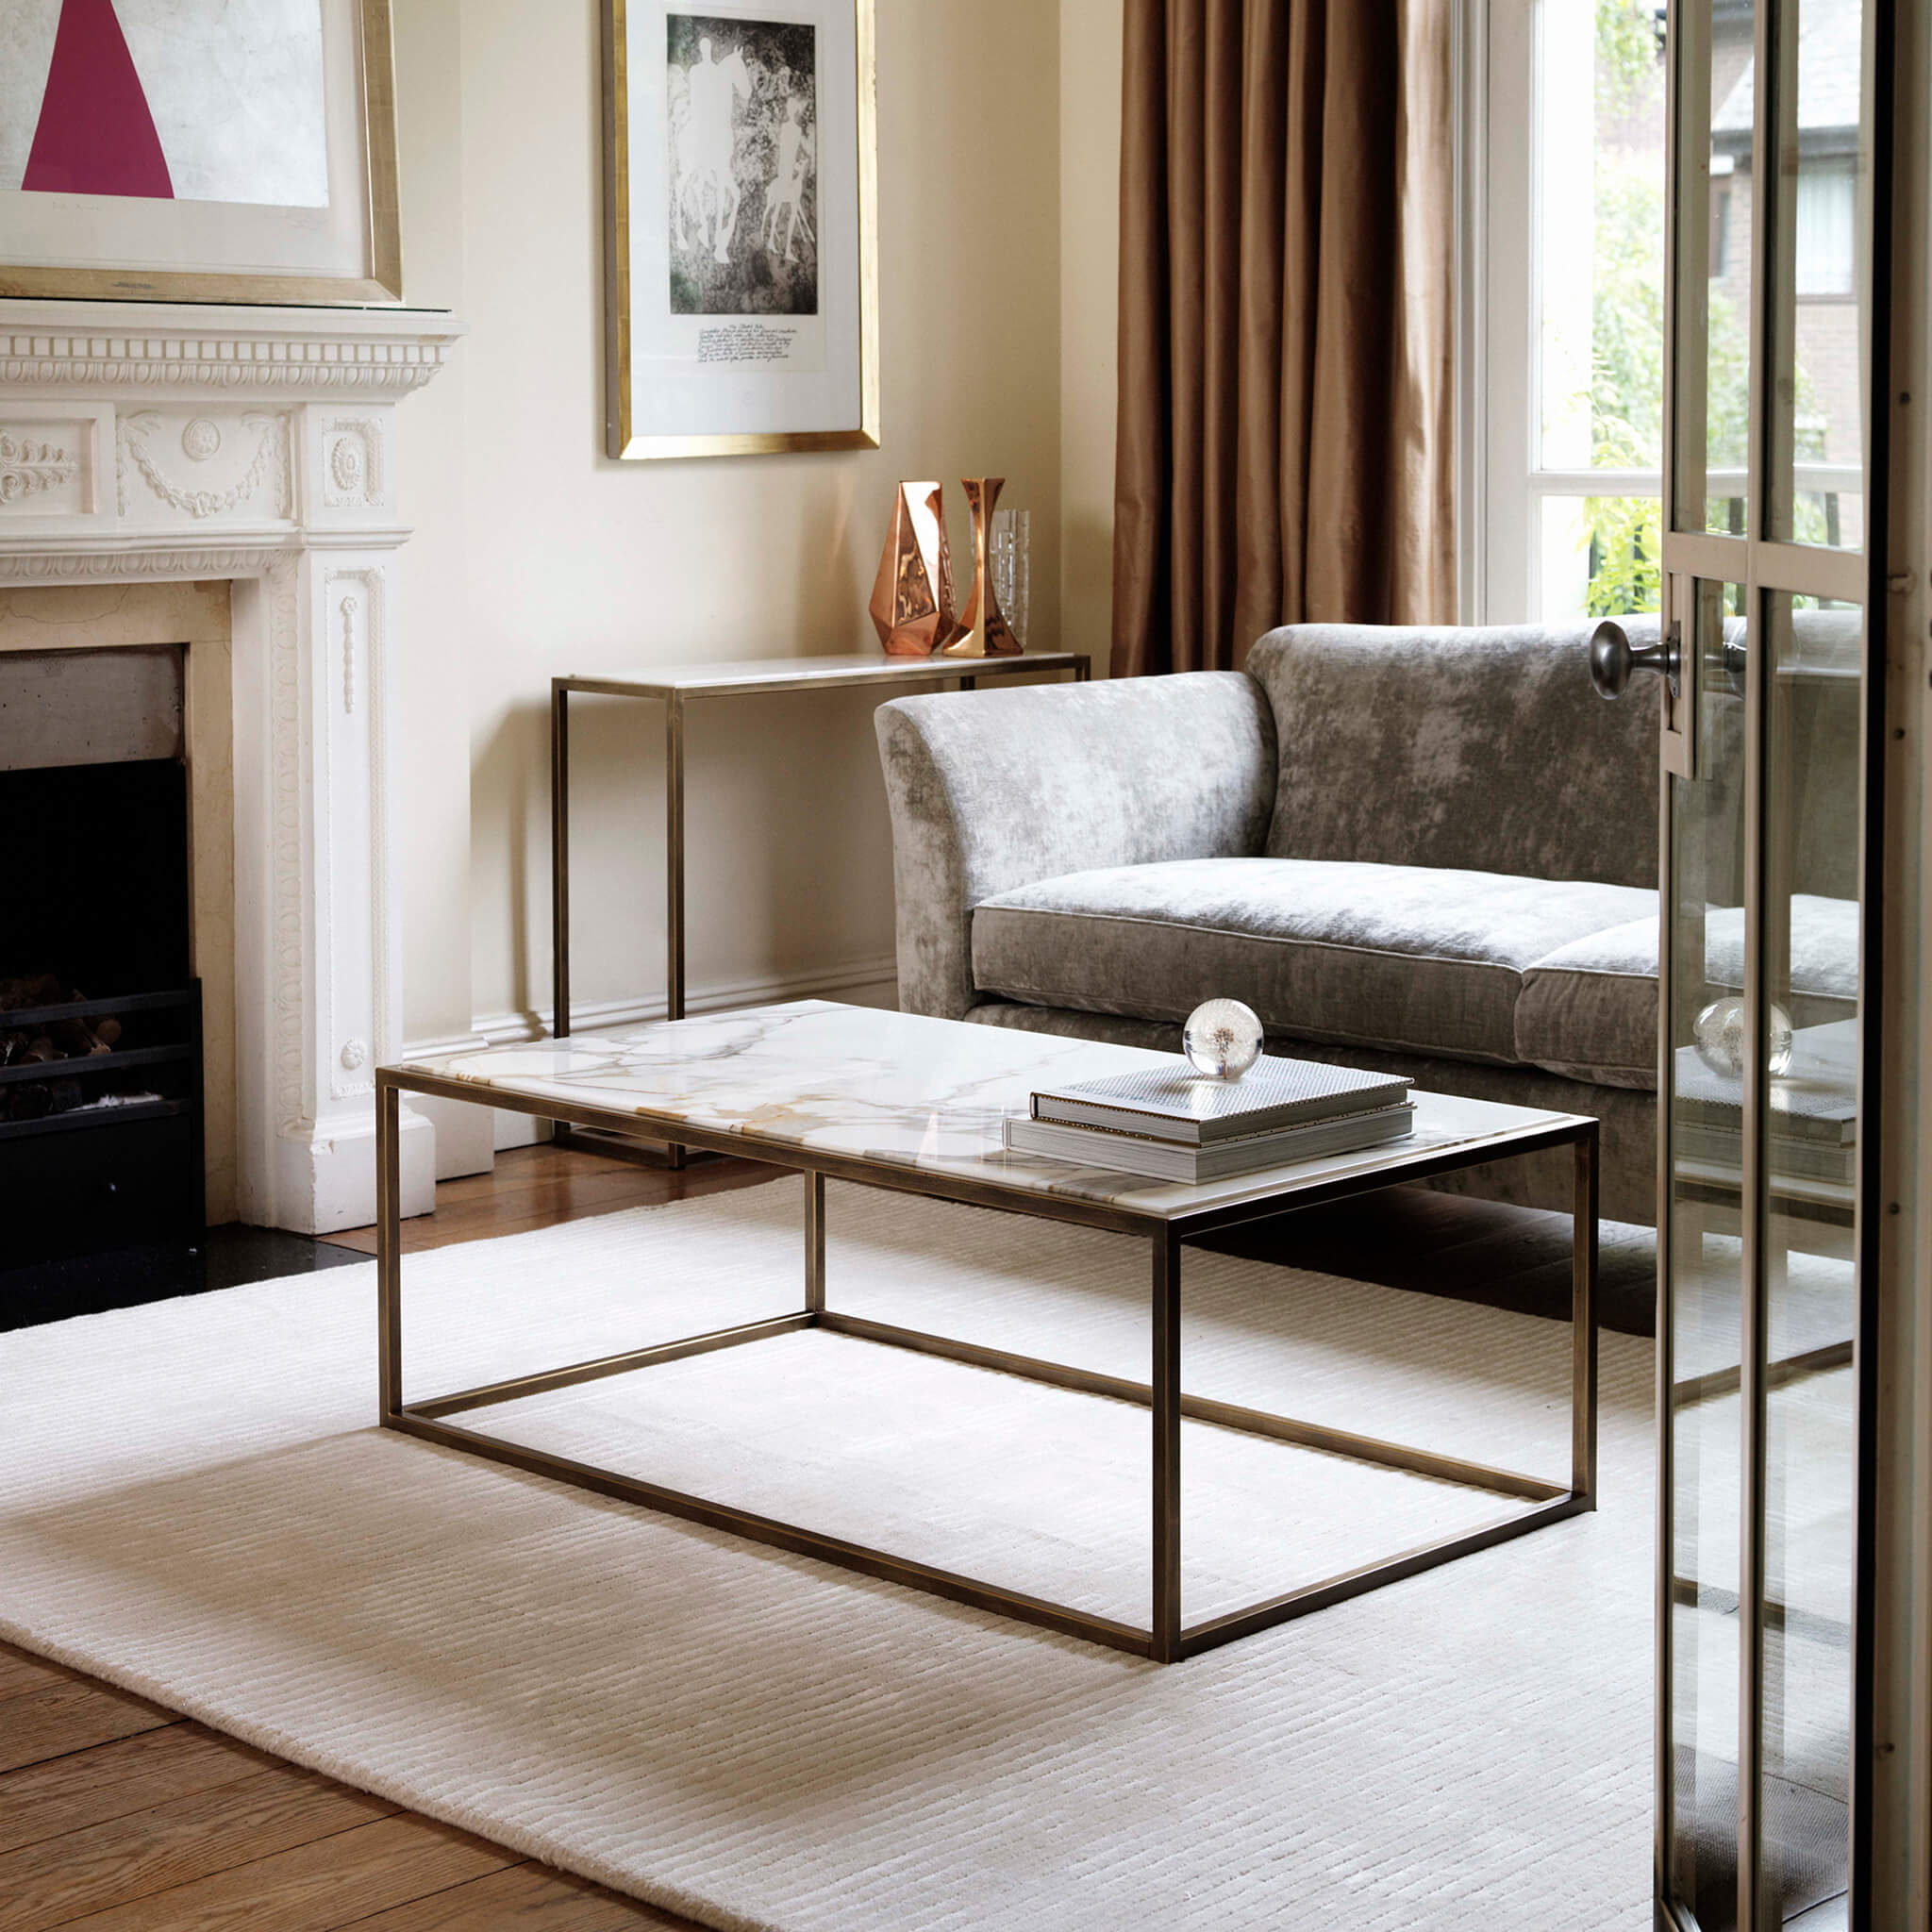 Siena Coffee Table in marble | Contemporary Furniture by Tom Faulkner